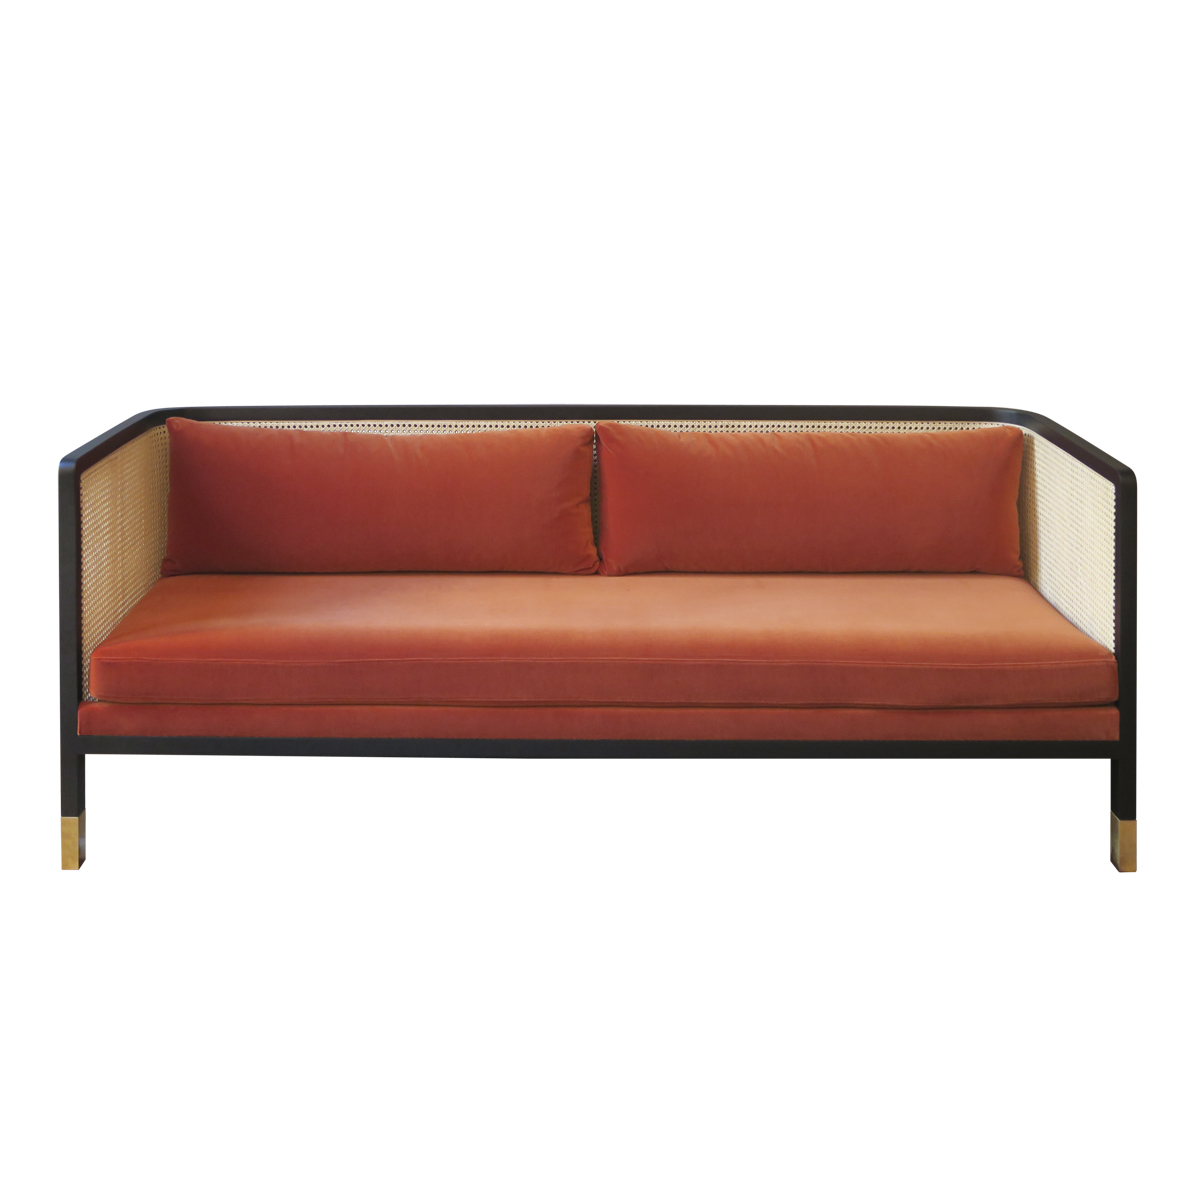 http://www.turbulences-deco.fr/wp-content/uploads/2017/11/thecoolrepublic_canape-cannage-210-cm-velours-fox-rouge-red-edition.jpg